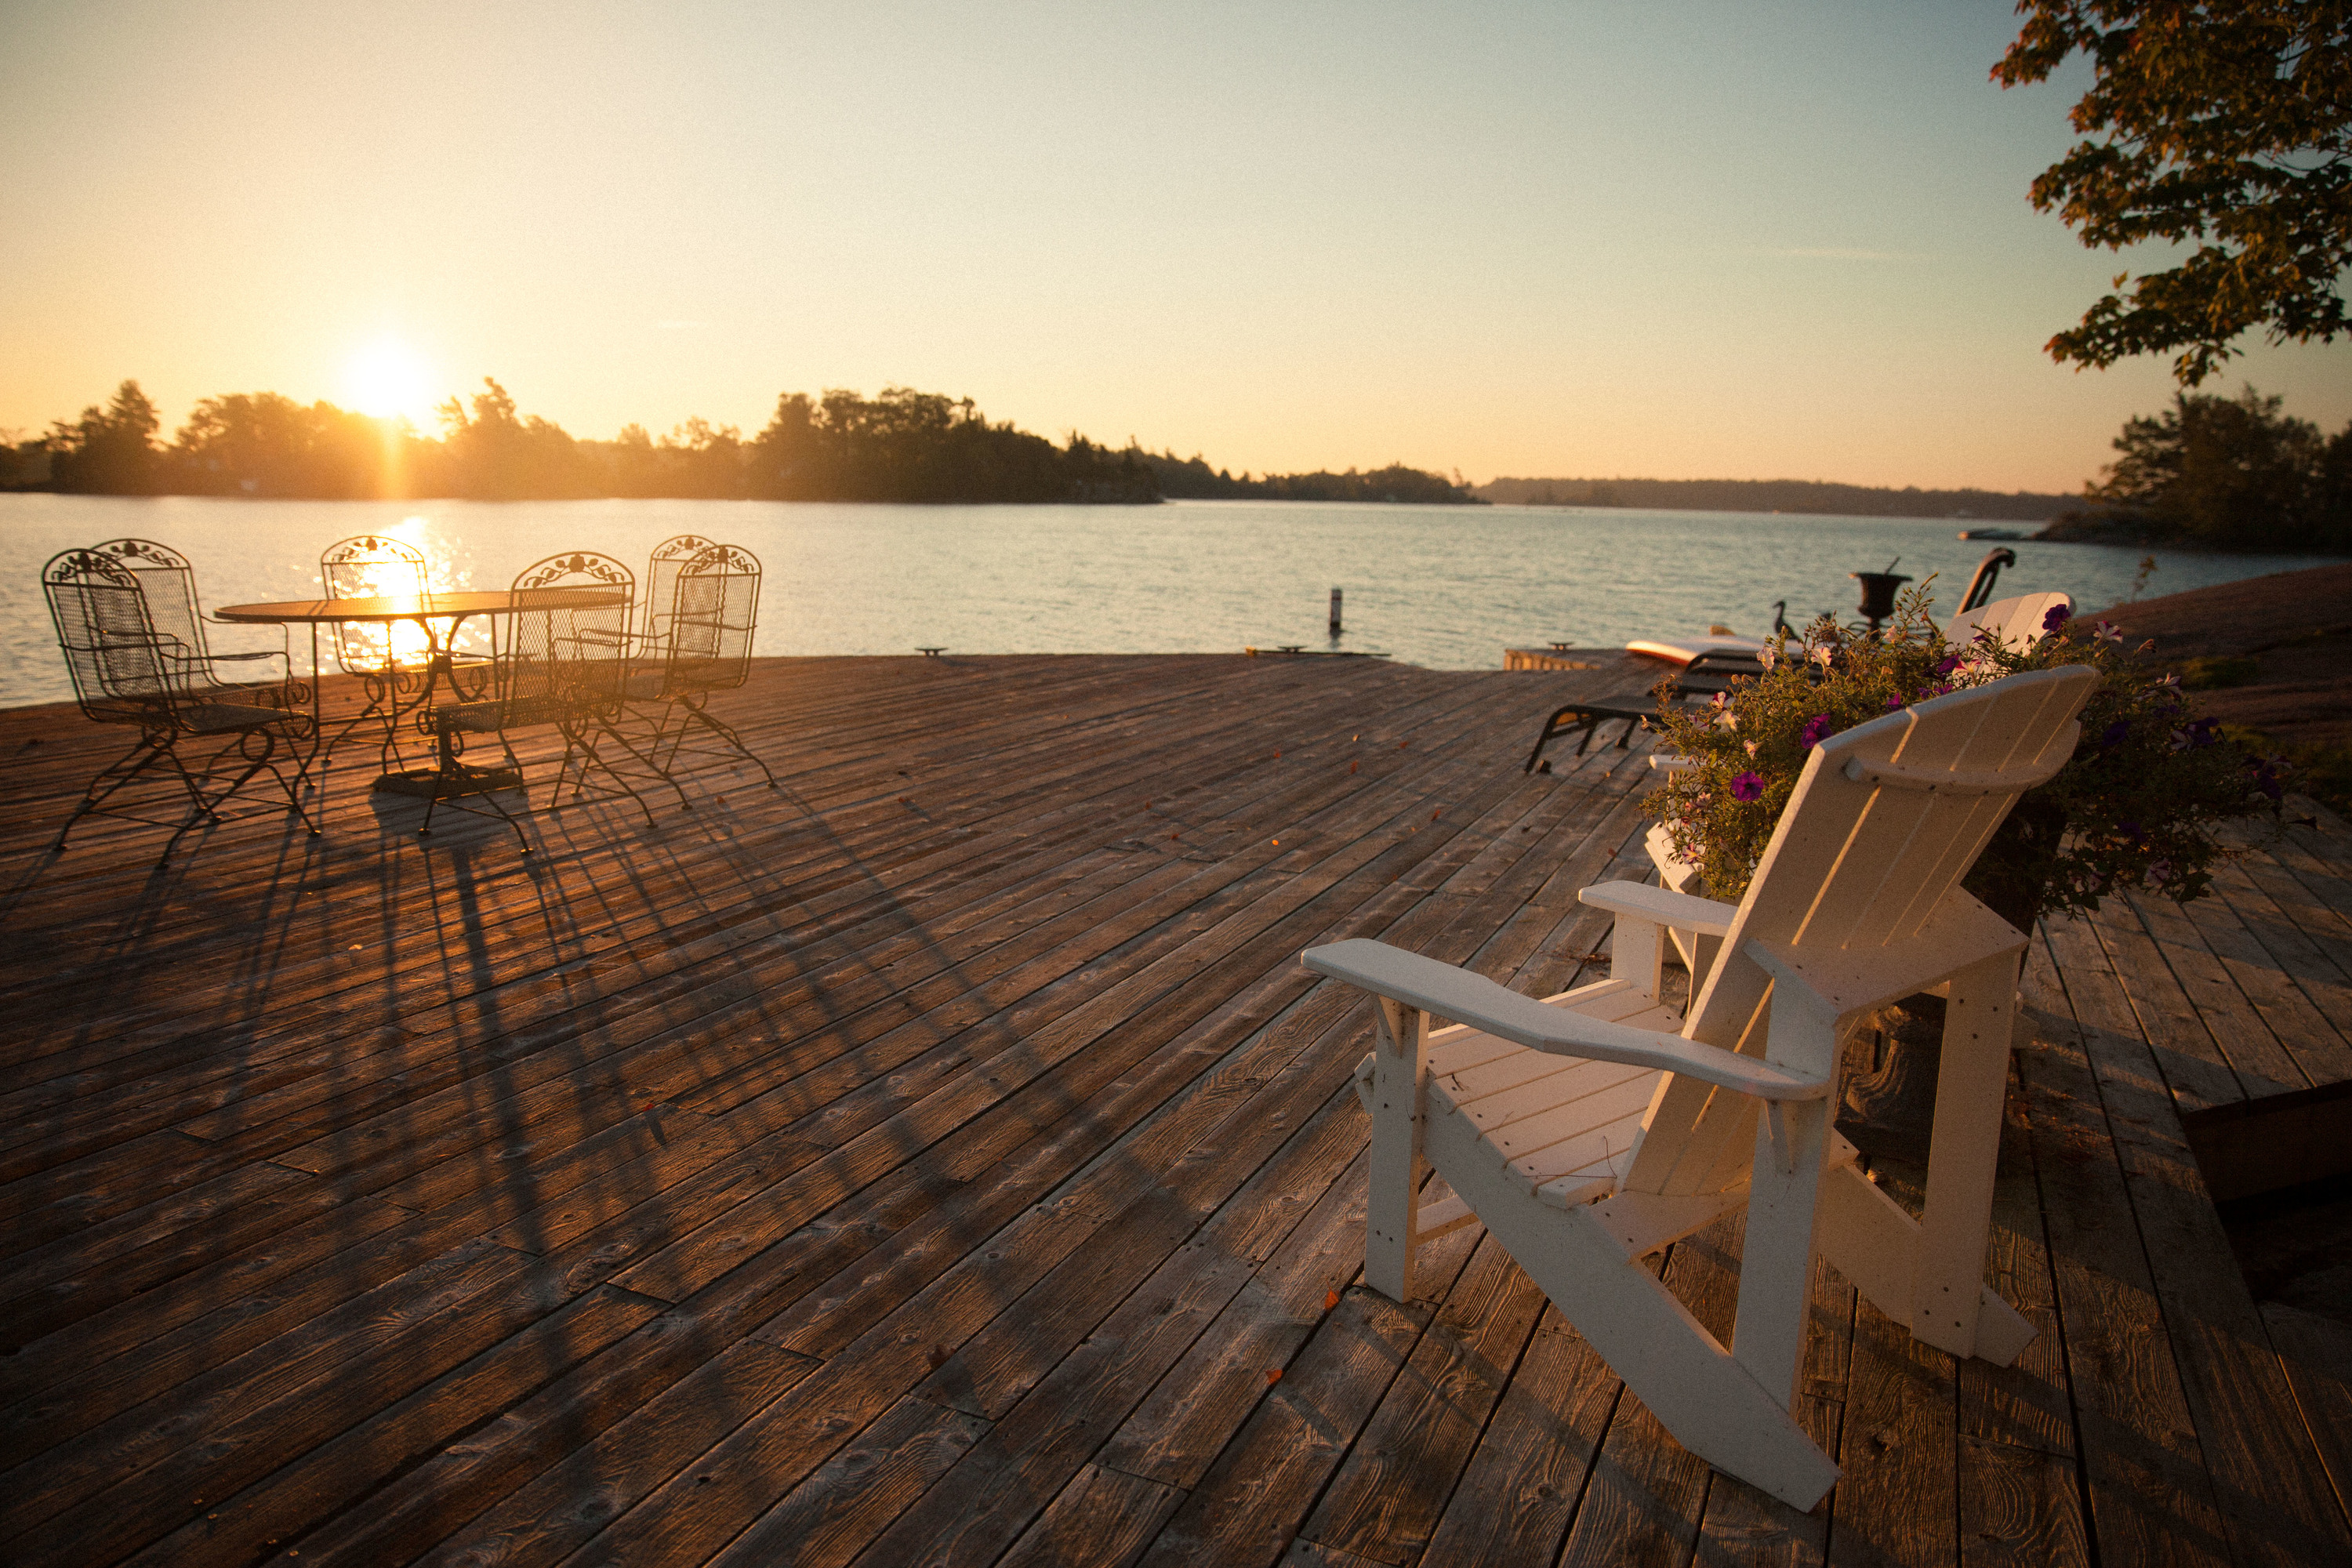 Thousand Islands, Ontario